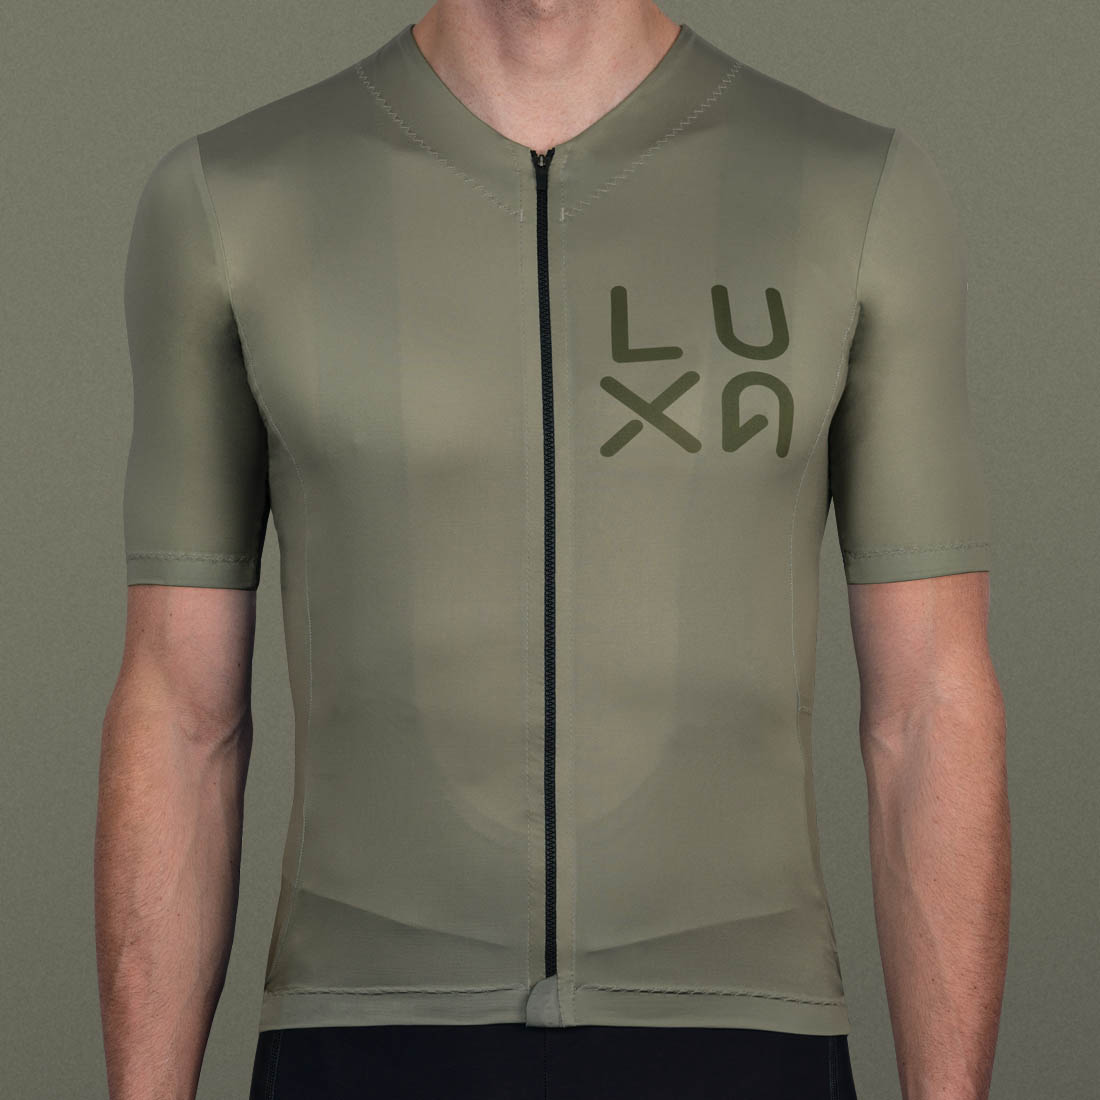 gravel men's jersey in classic khaki color like dust from gravel path